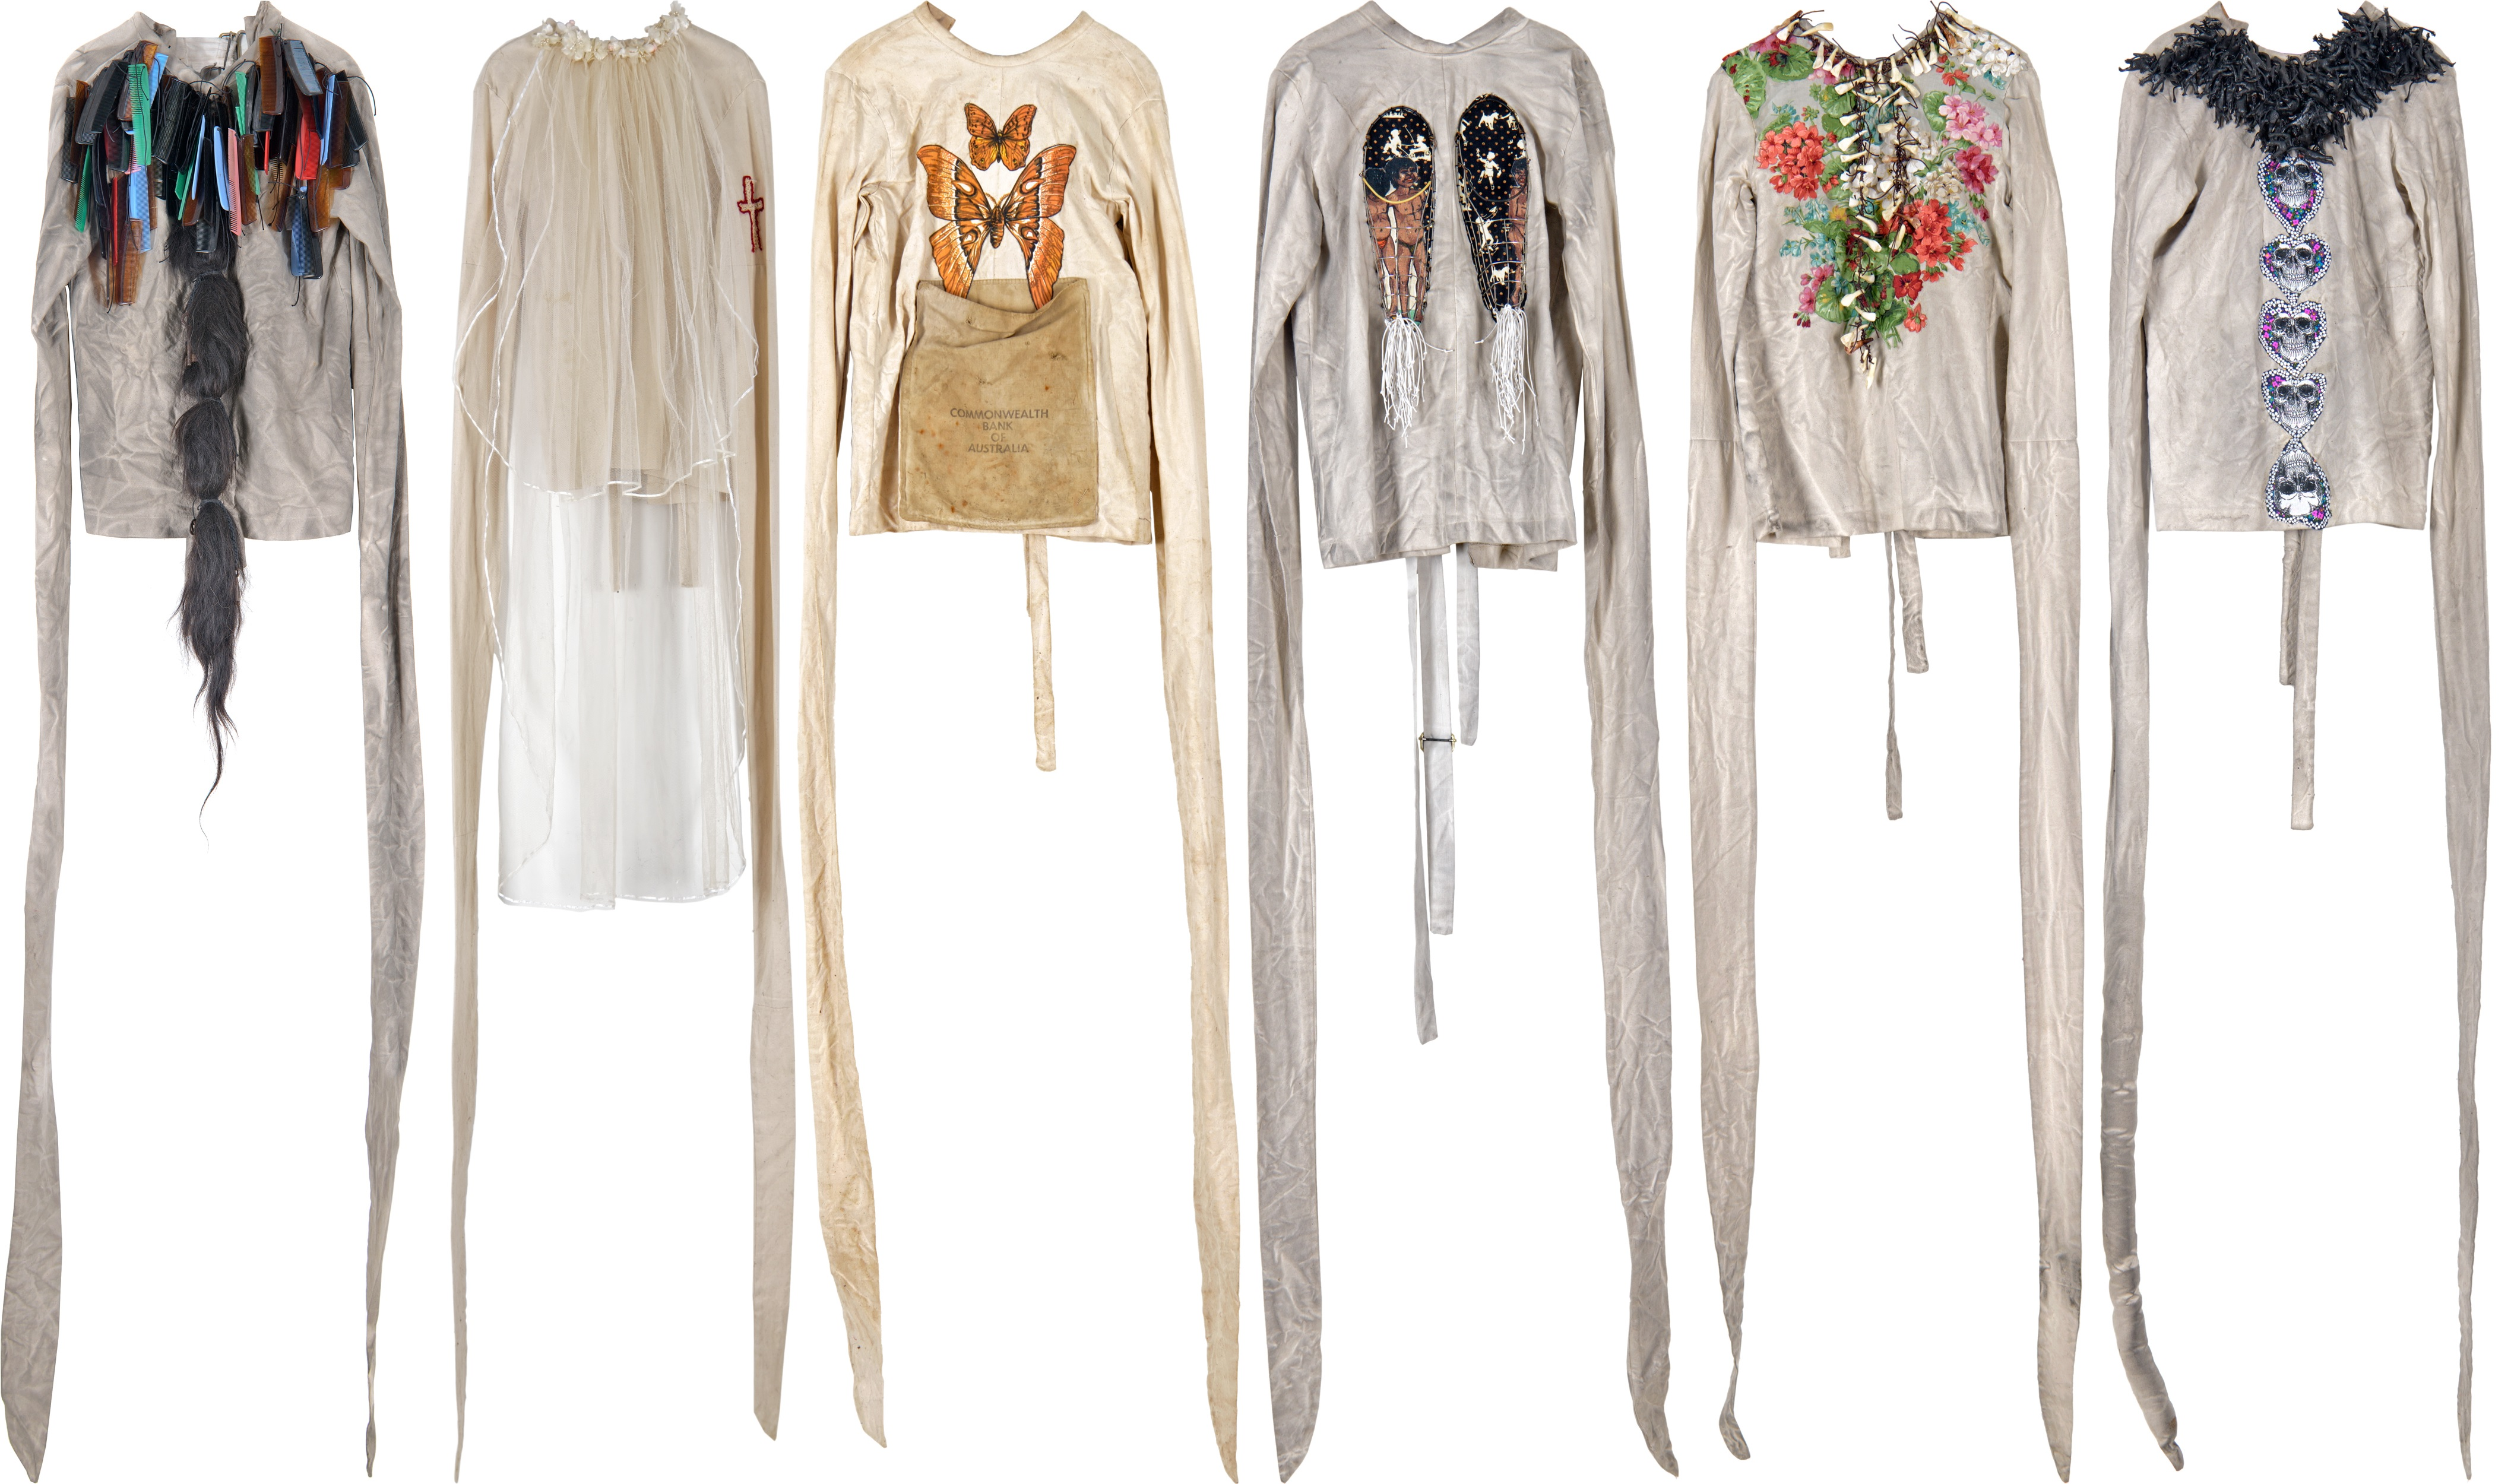 six straight jackets with images and objects attached, from left to right combs and hair, lace and embroidery, butterflies, images of people and dog muzzles, flowers and teeth, skulls and rubber